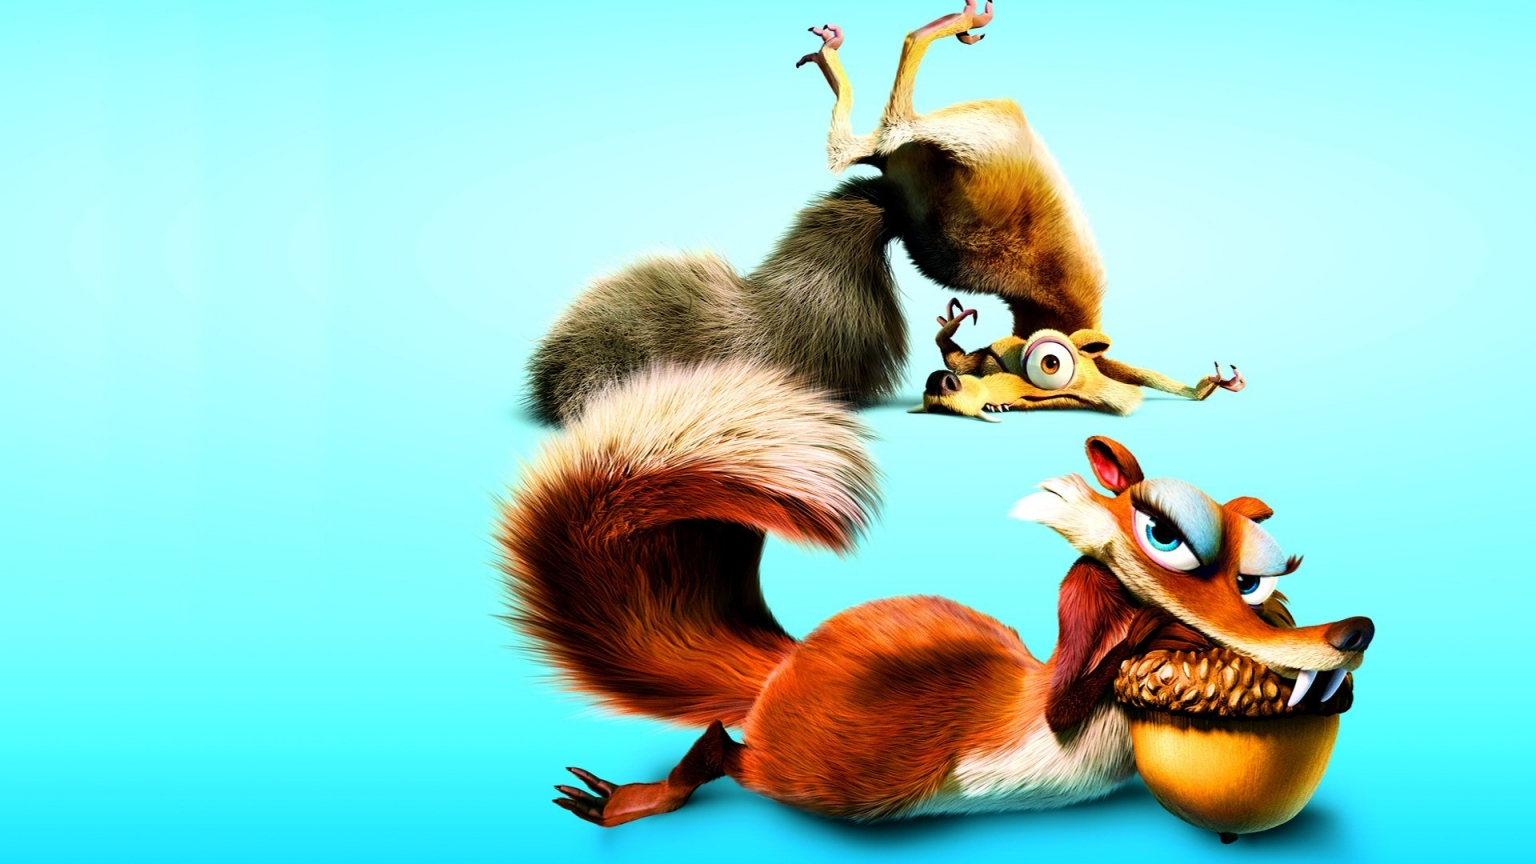 From Ice Age for 1536 x 864 HDTV resolution